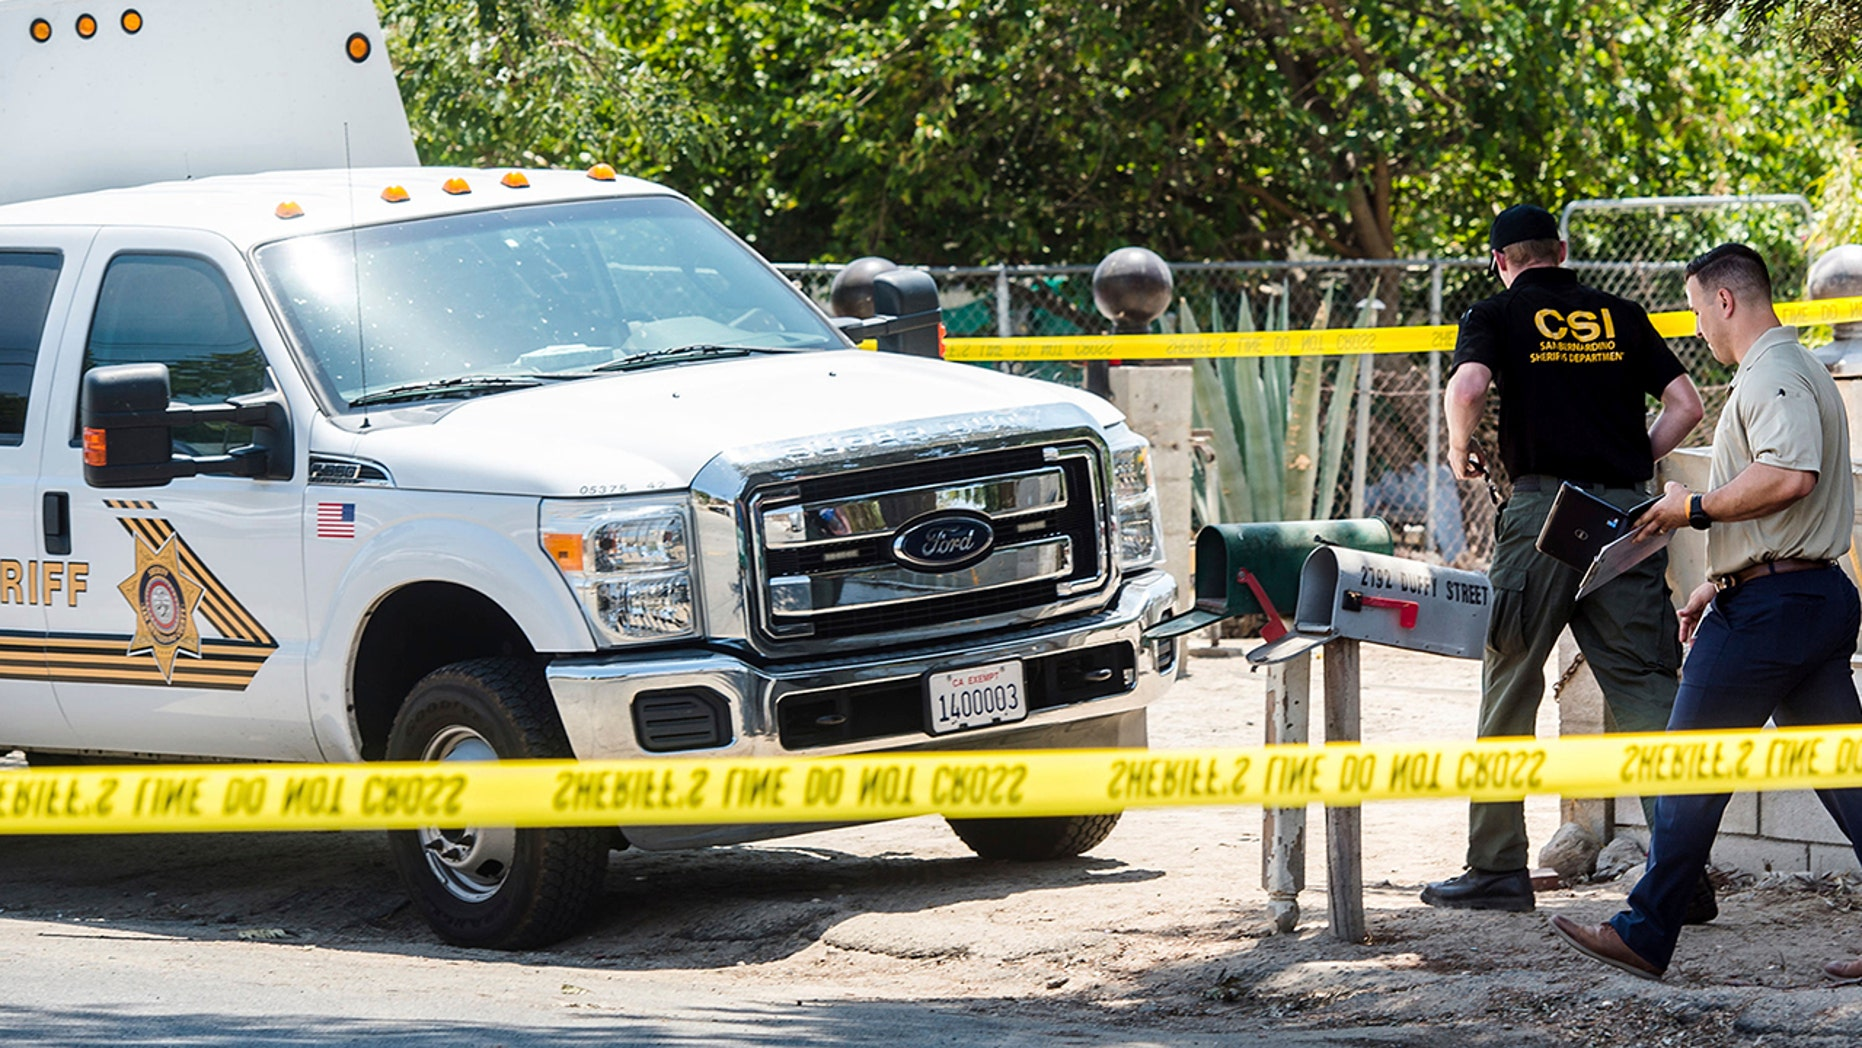 San Bernardino County Sheriff's personnel investigate the scene of a fatal shooting in Muscoy, Calif., on Friday.